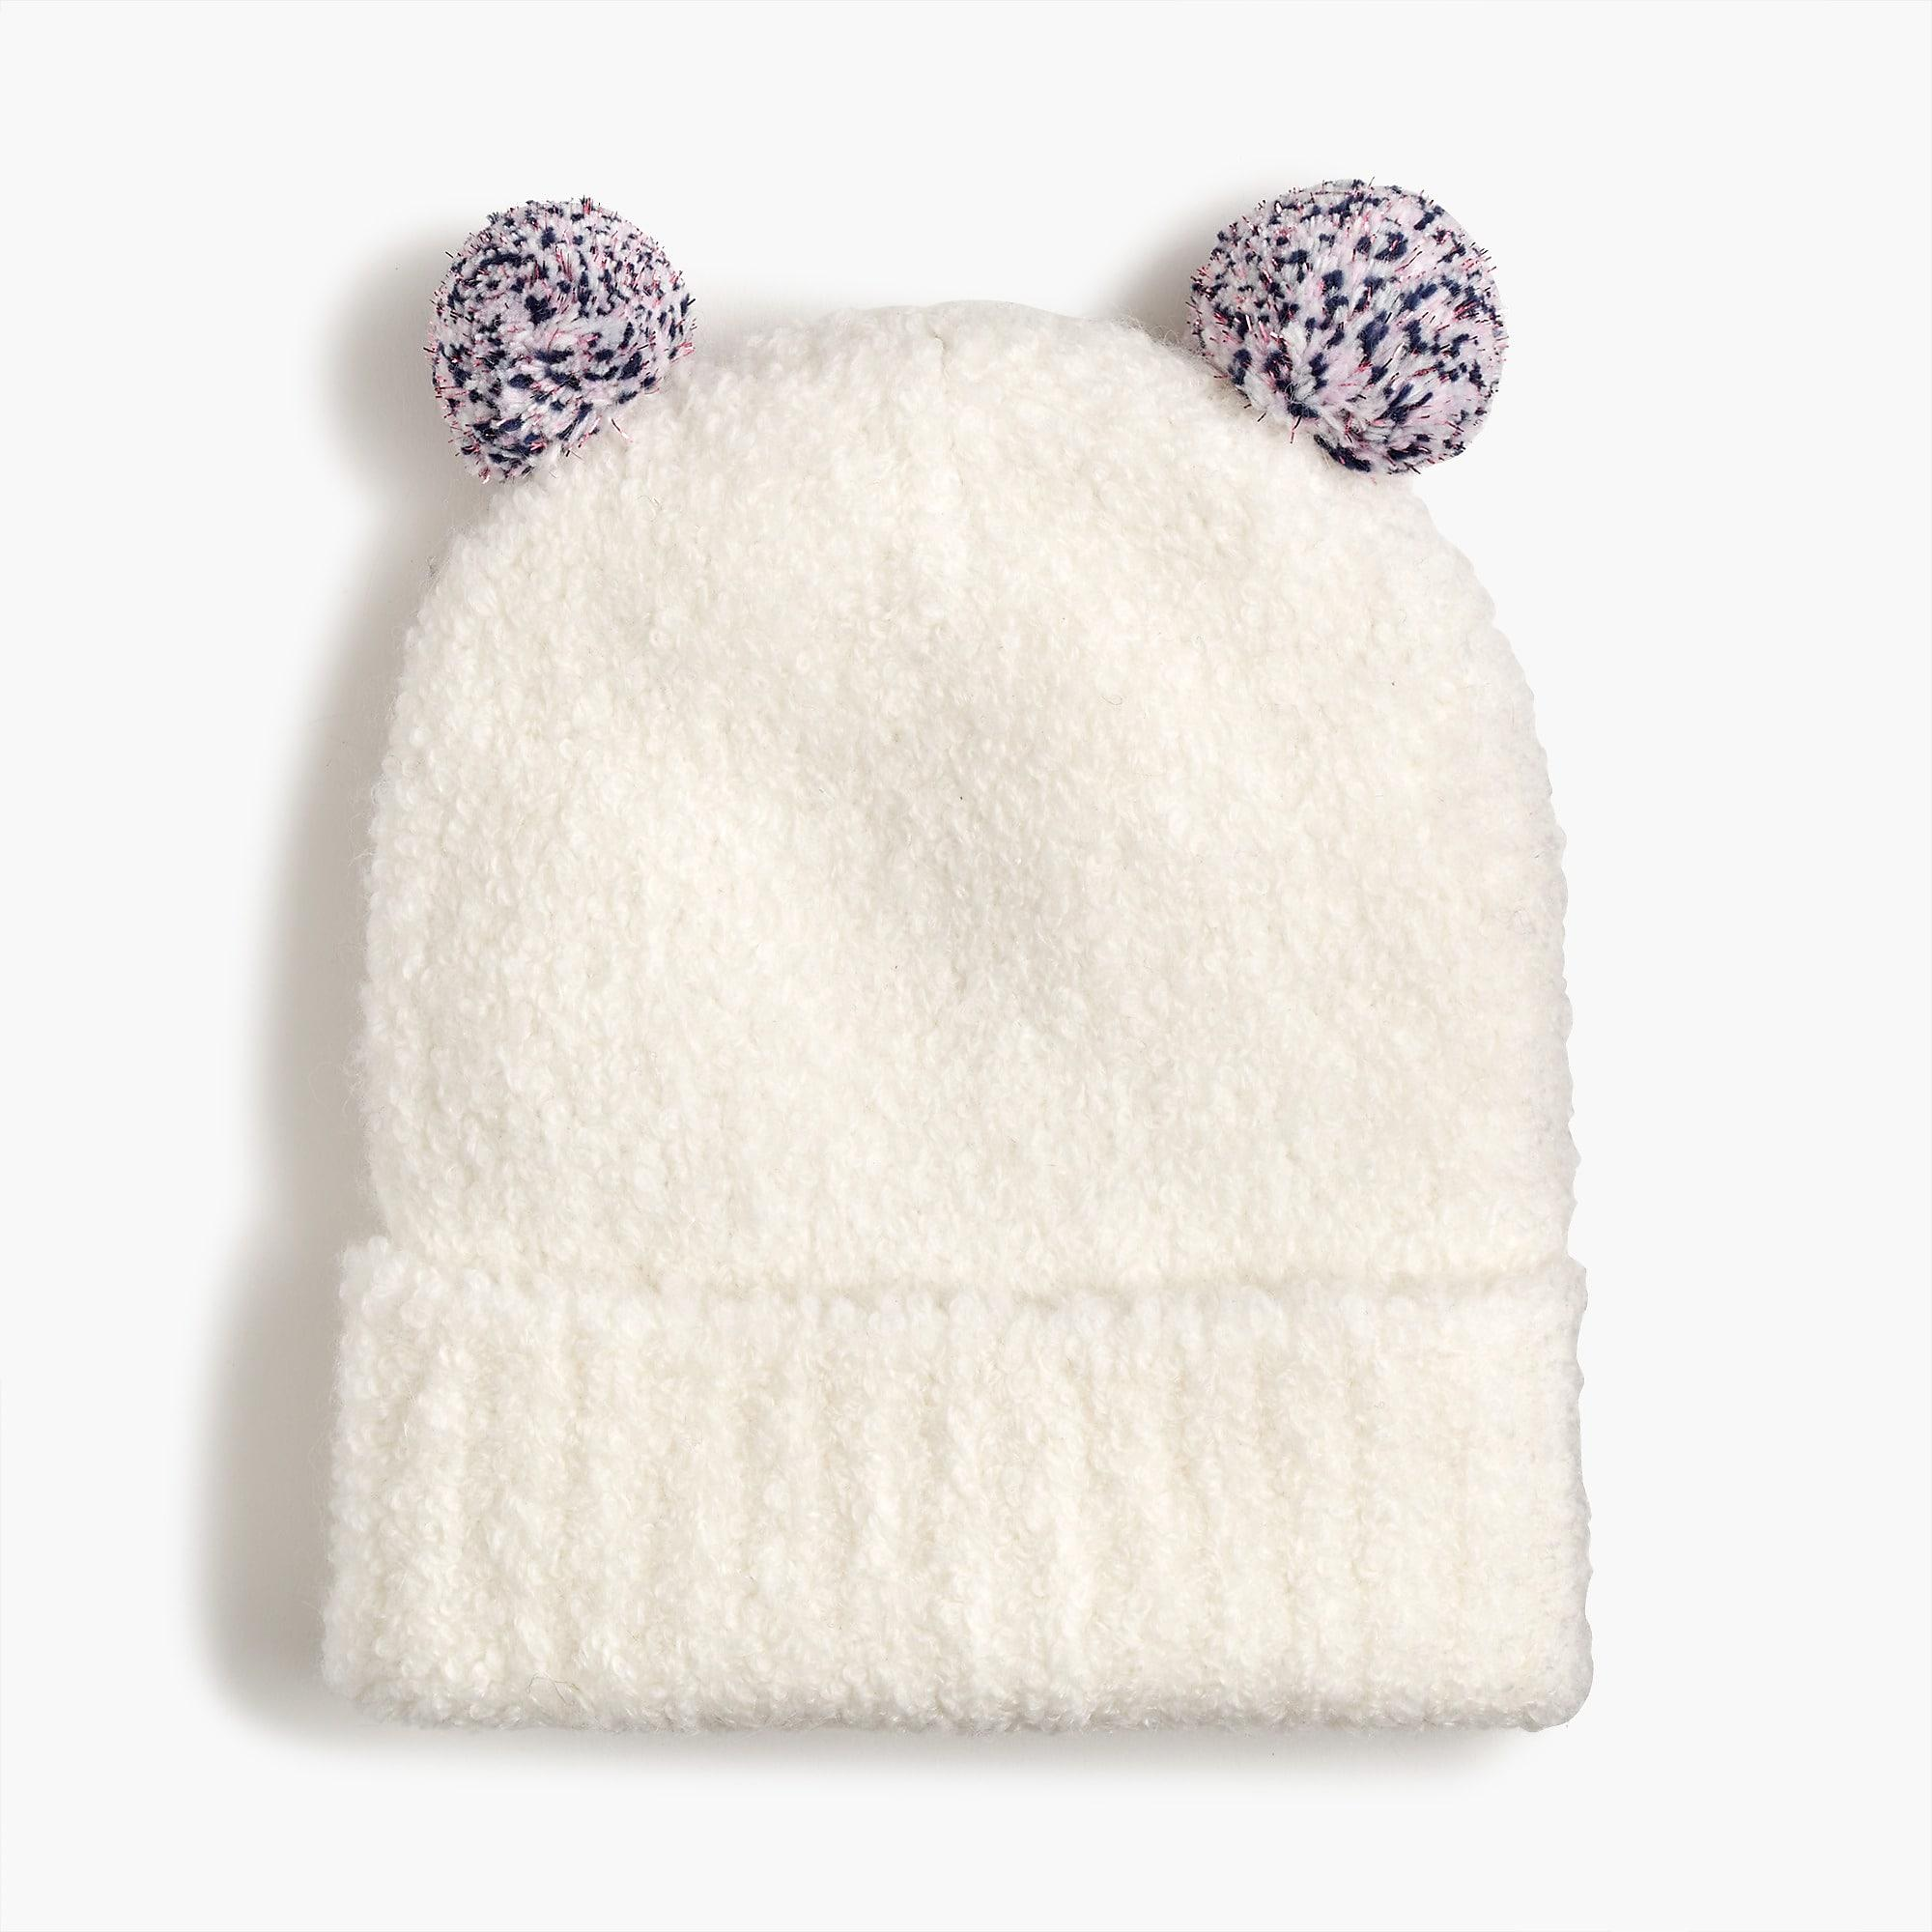 07cd138f710 Lyst - J.Crew Girls  Knit Cap With Sparkly Pom-poms in White